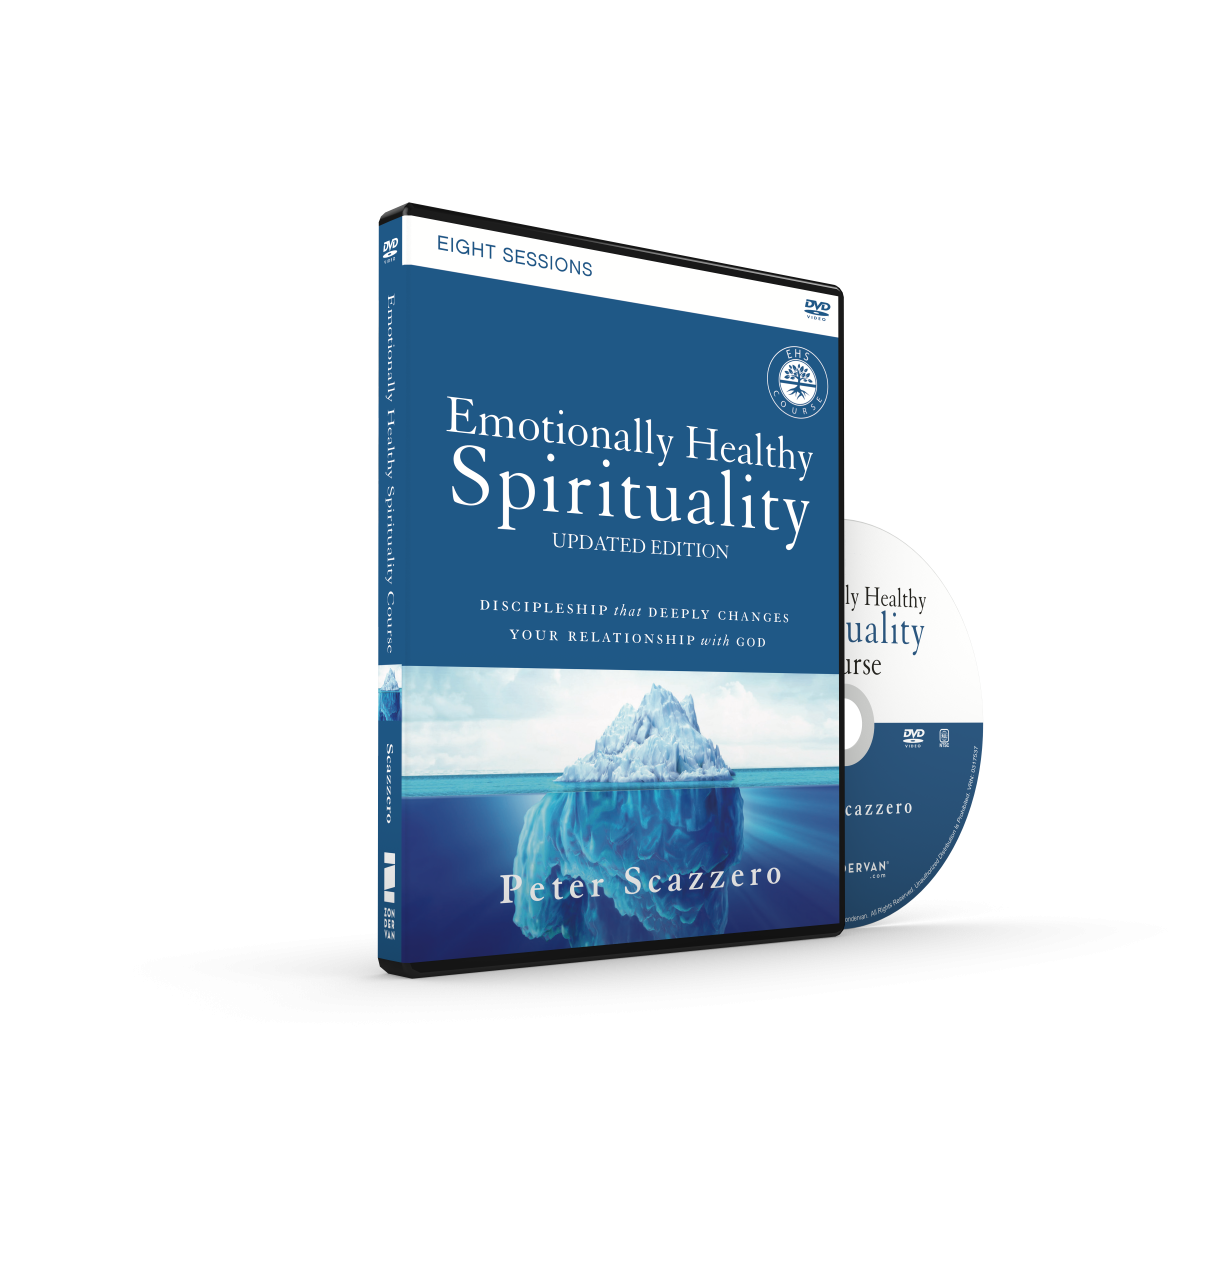 Emotionally Healthy Spirituality Streaming Video Product Image